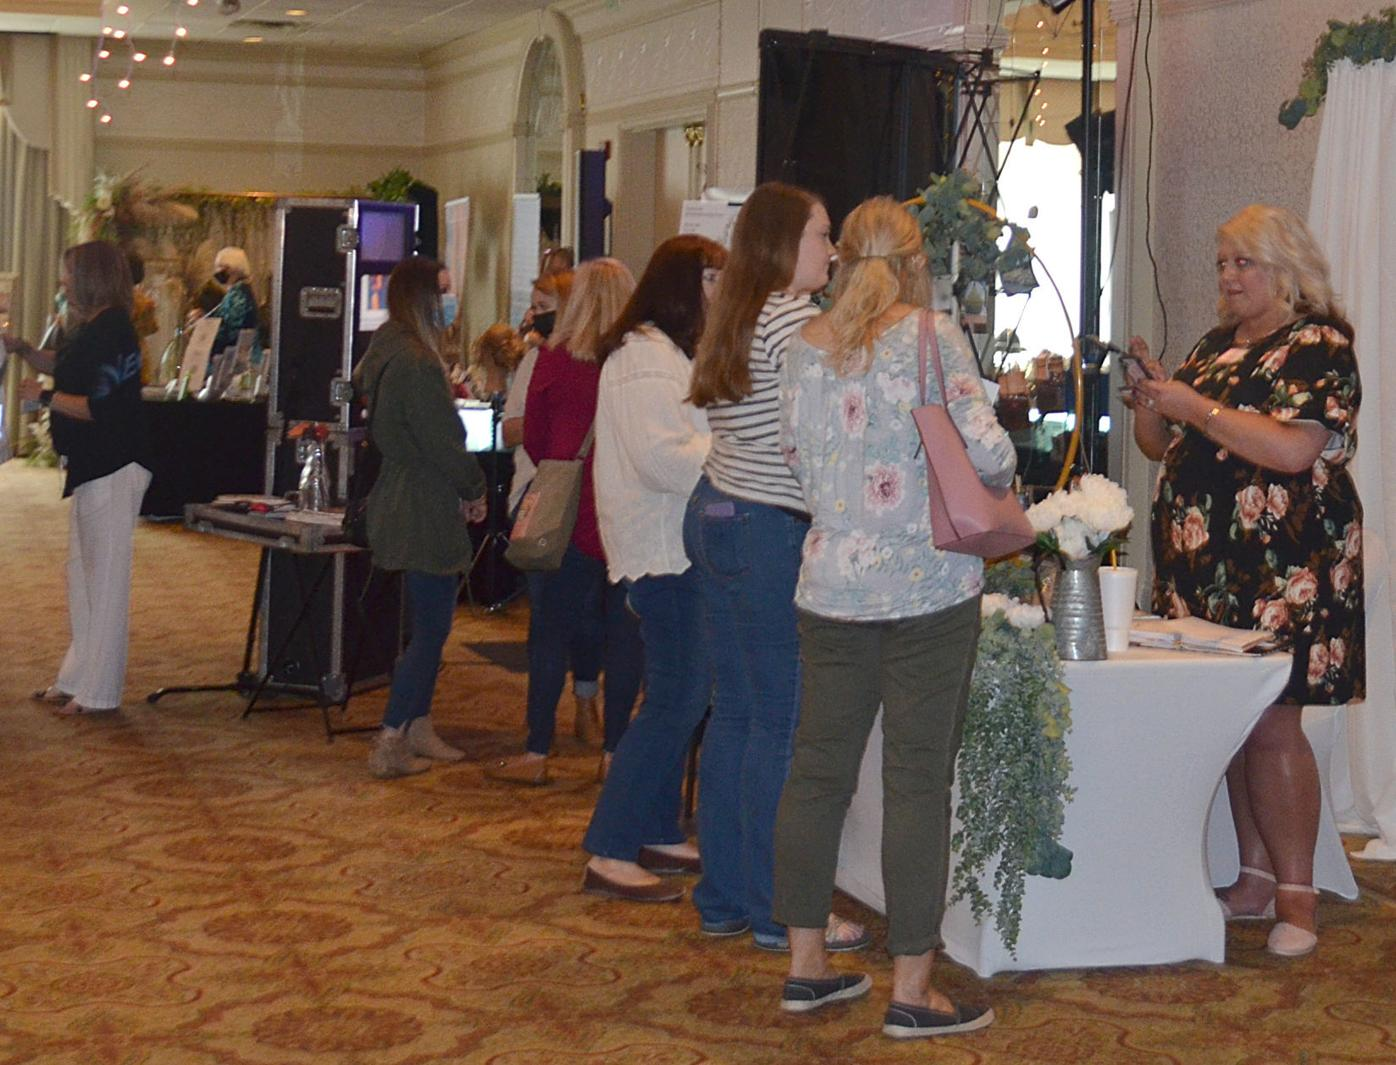 Speaking With Wedding Planner At Bridal Fair